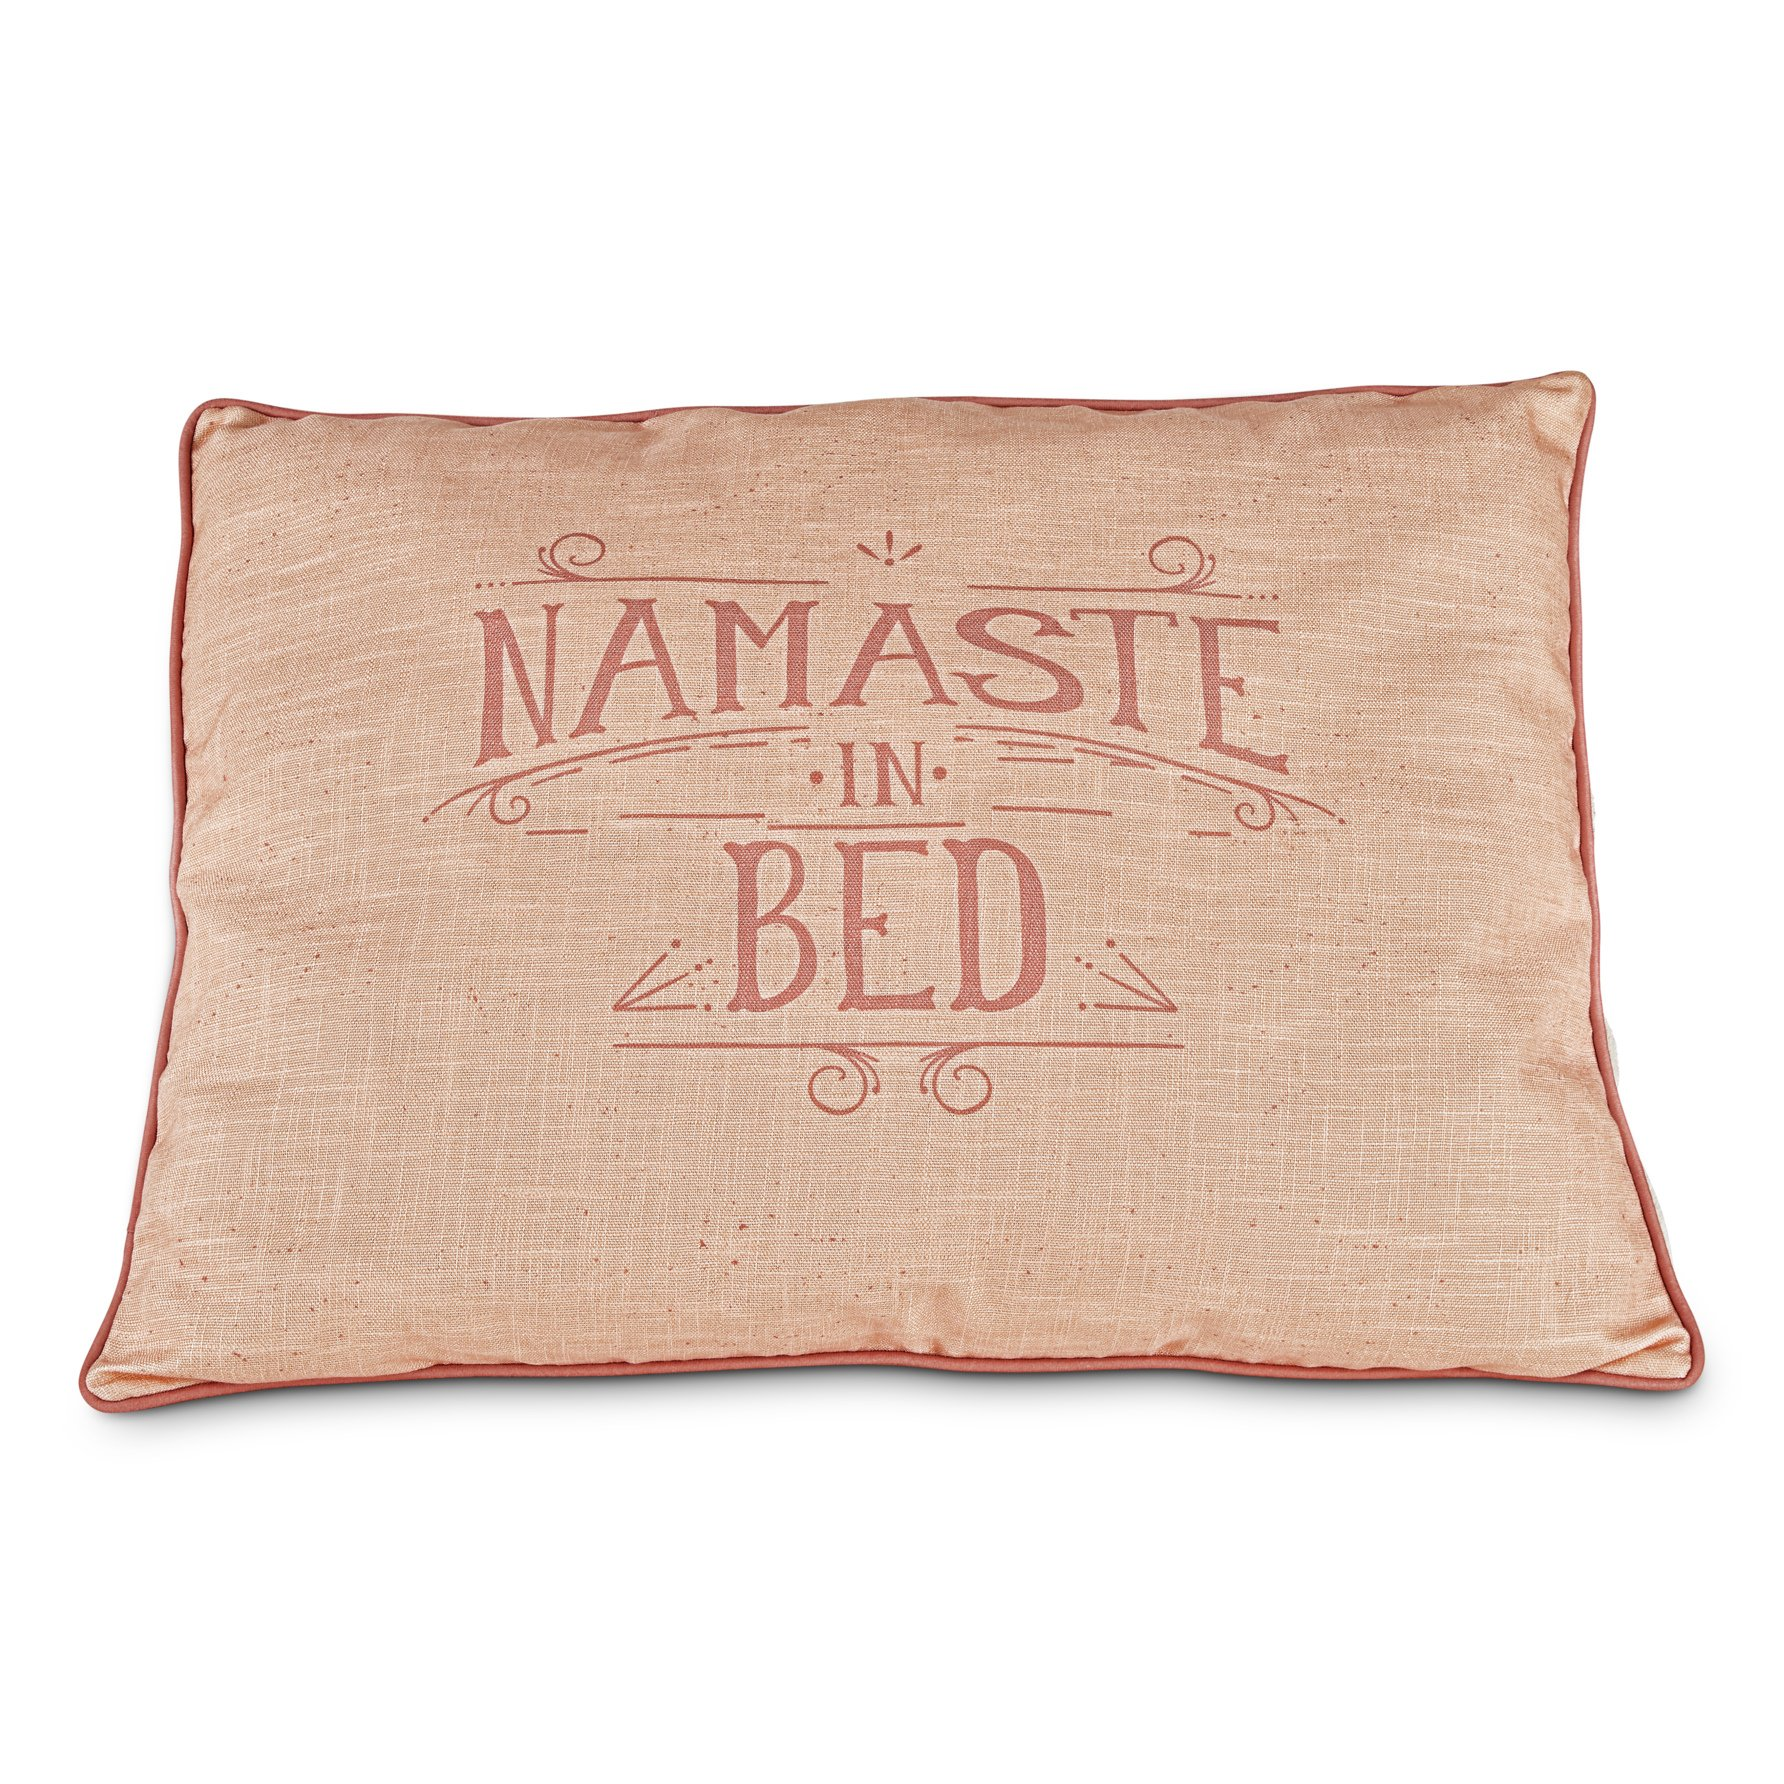 You & Me Namaste in Bed Pillow Dog Bed   Petco   Tuggl